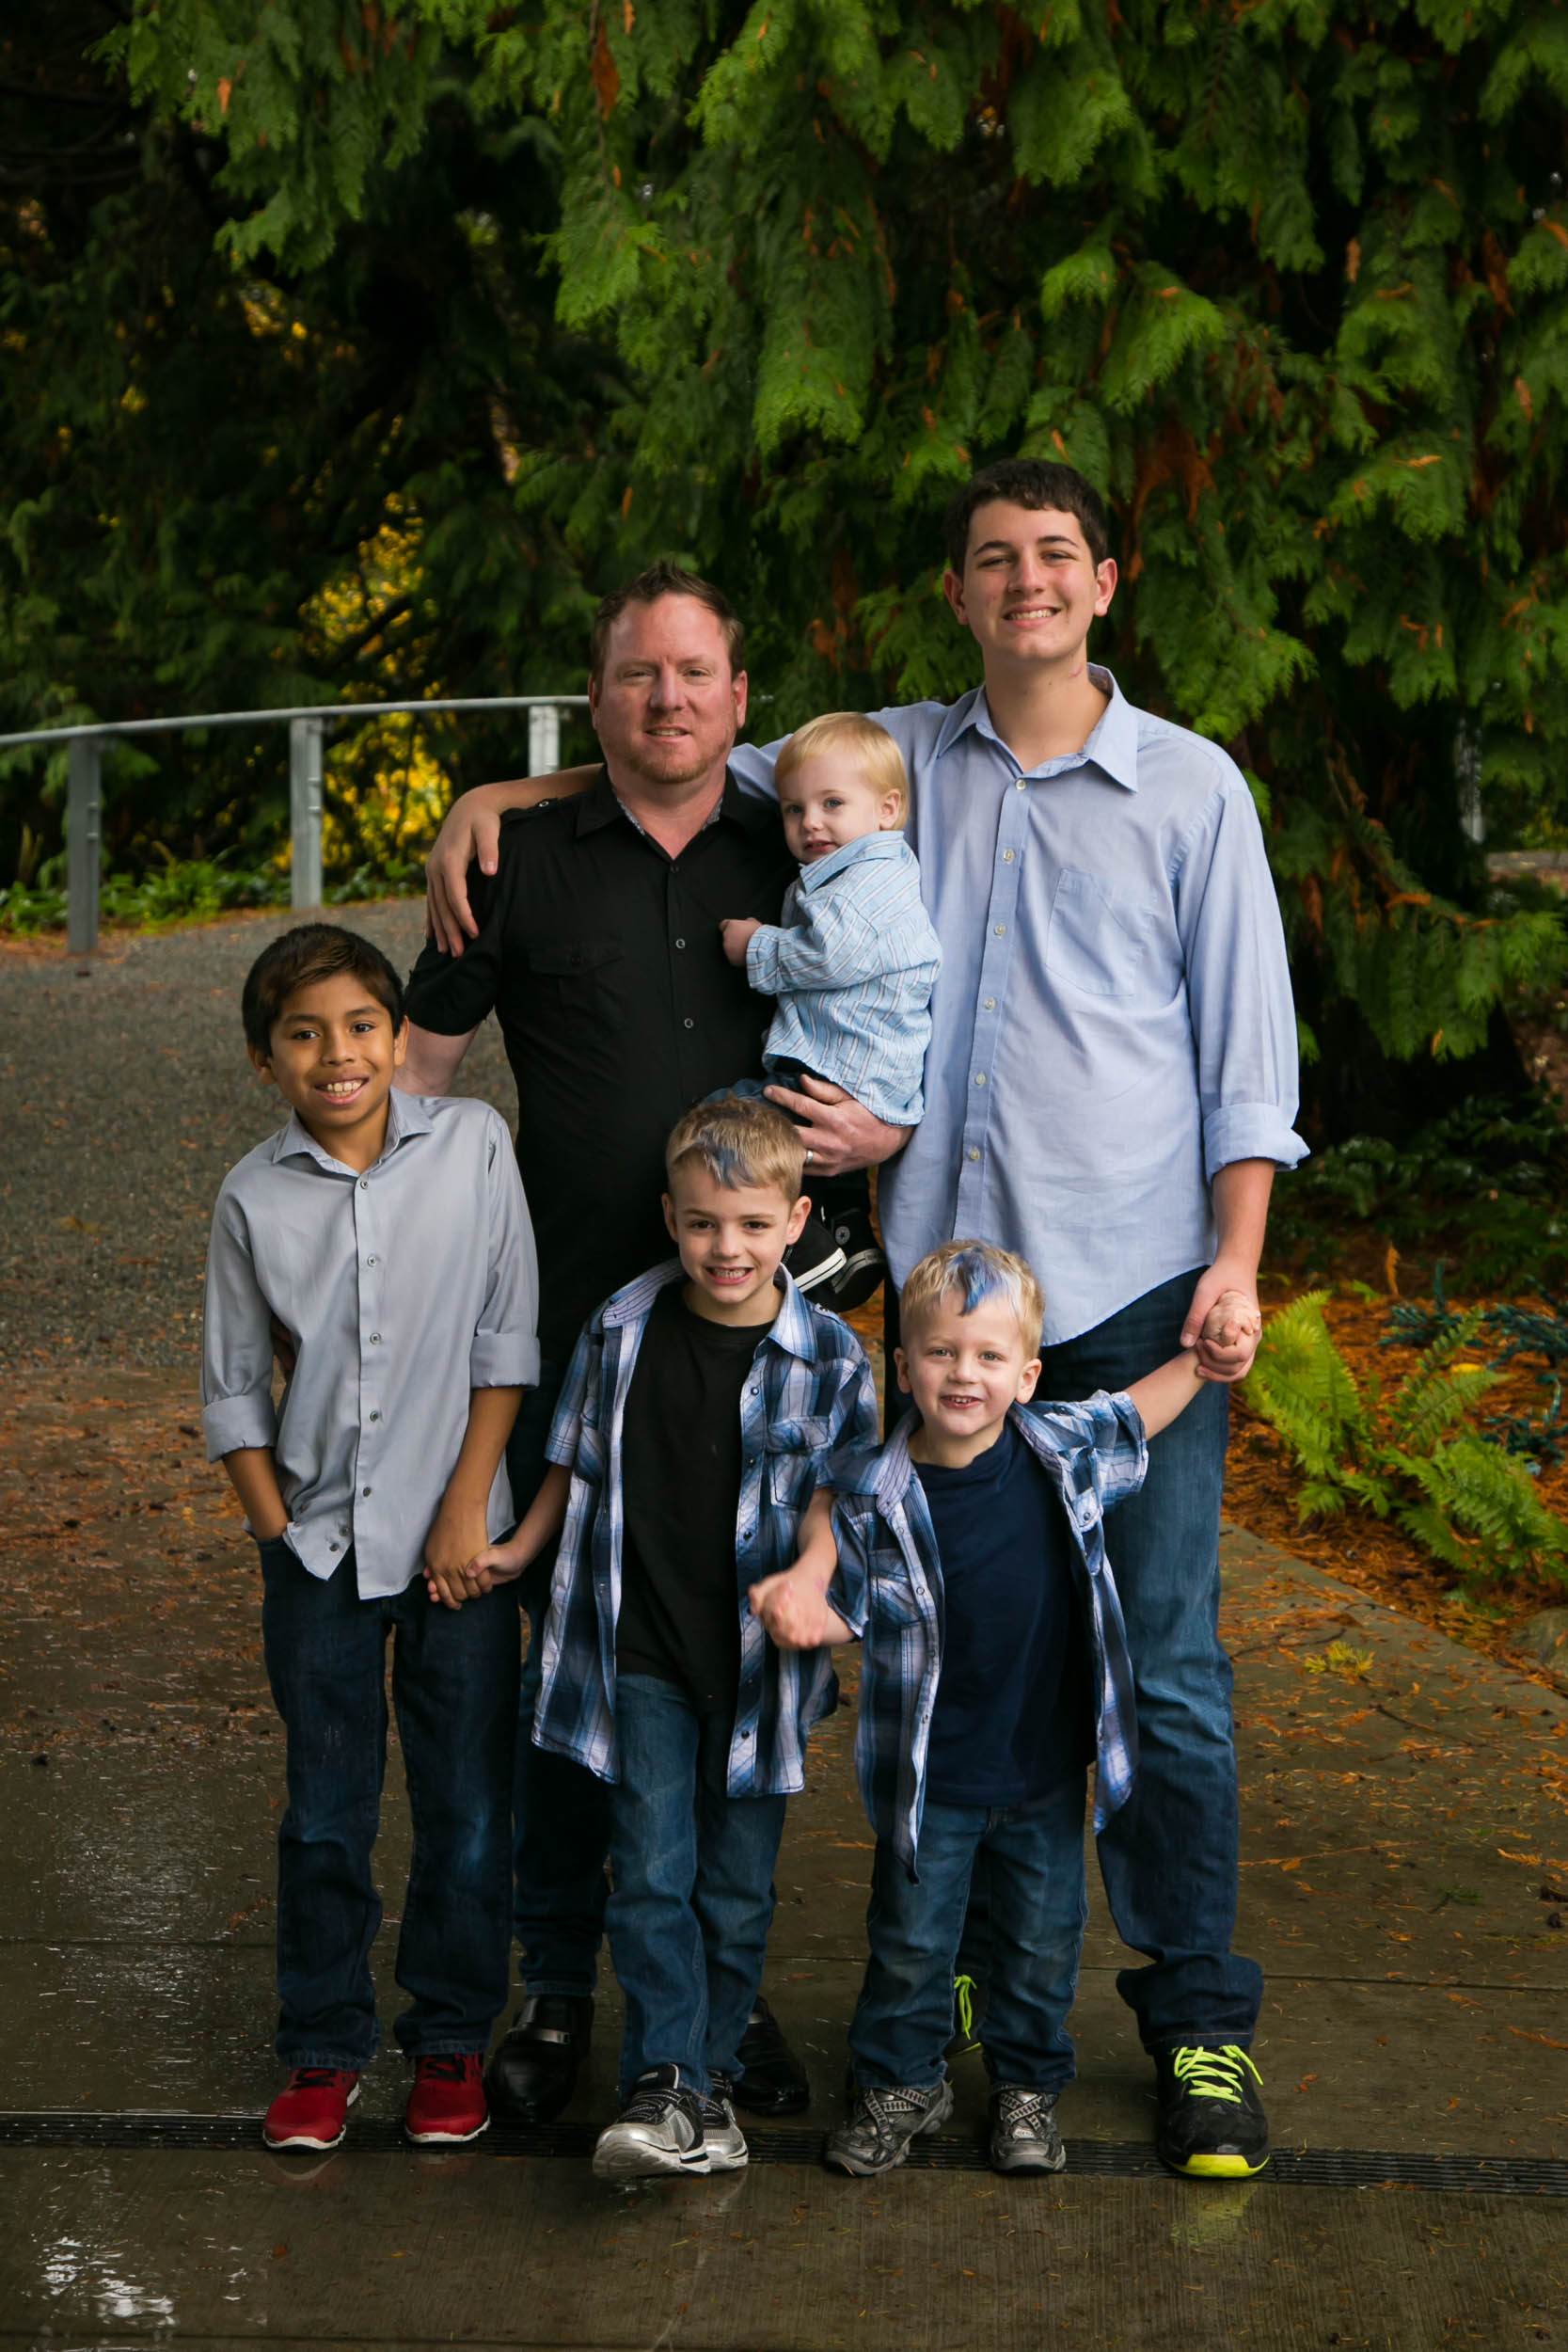 A father and his five sons! We had the little ones hold hands to help them stay together for a few seconds. Photo was taken in Seattle, WA.